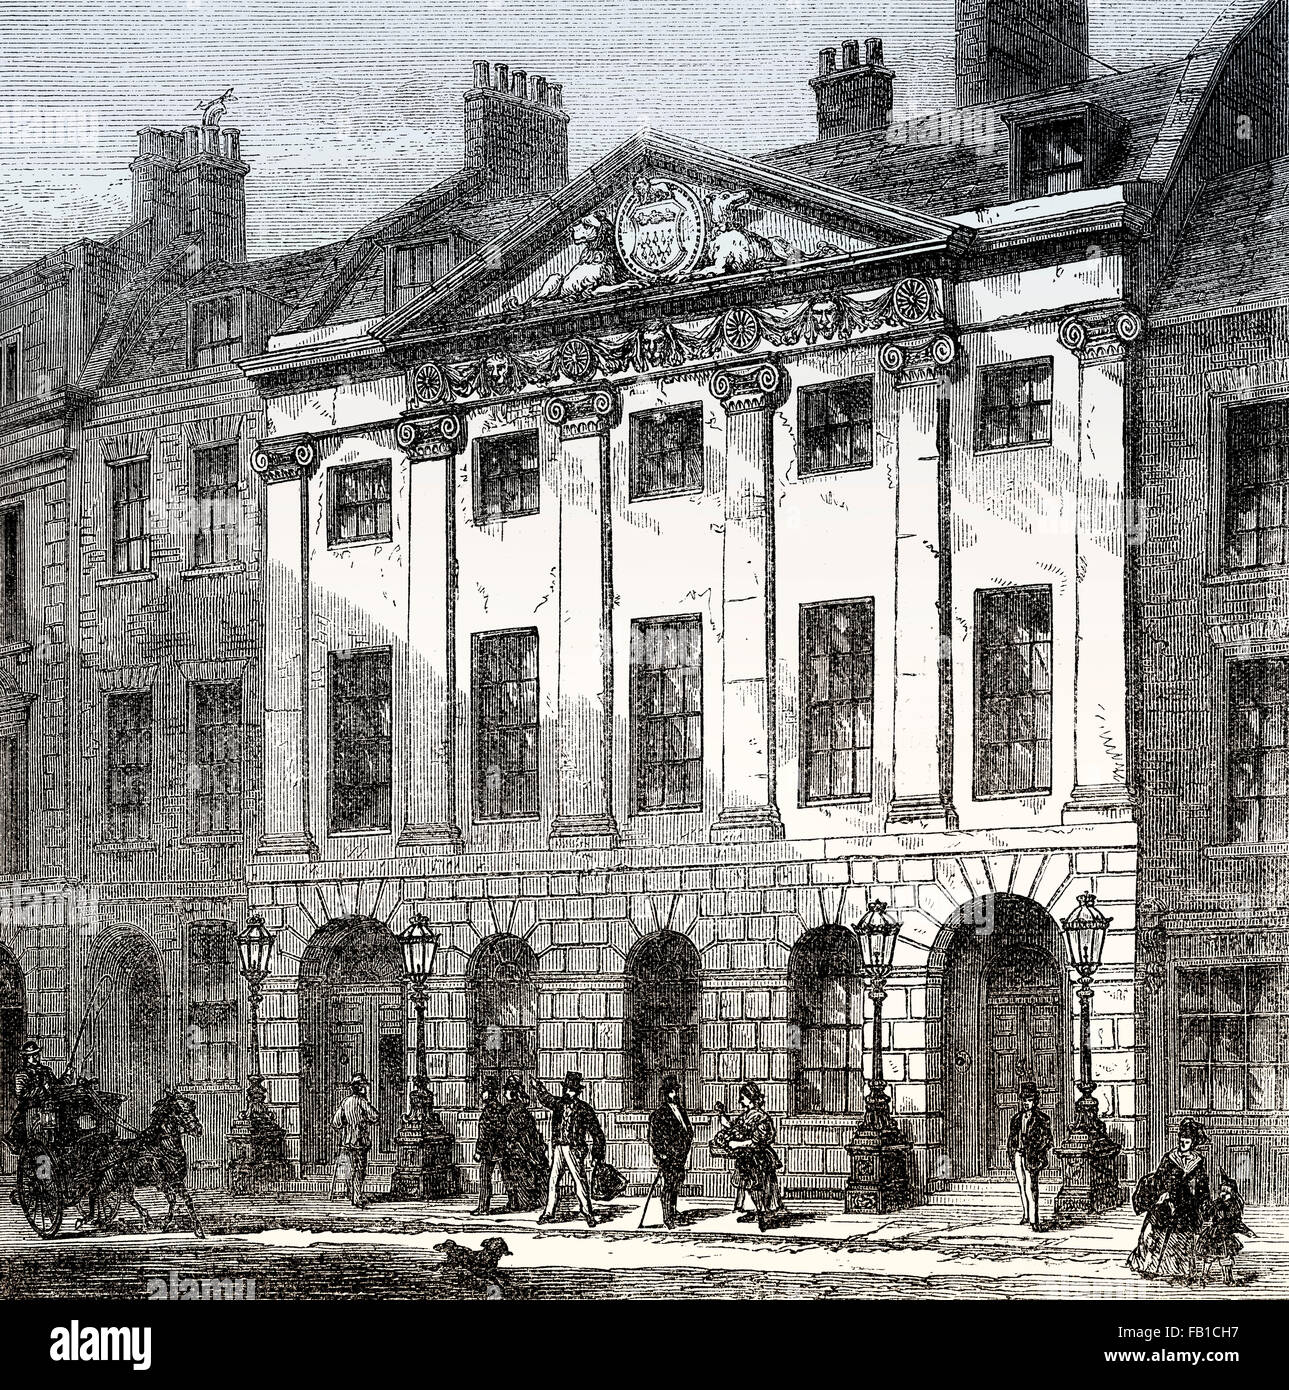 Skinners' Hall, Dowgate Hill, City of London, The Worshipful Company of Skinners, 19th century - Stock Image